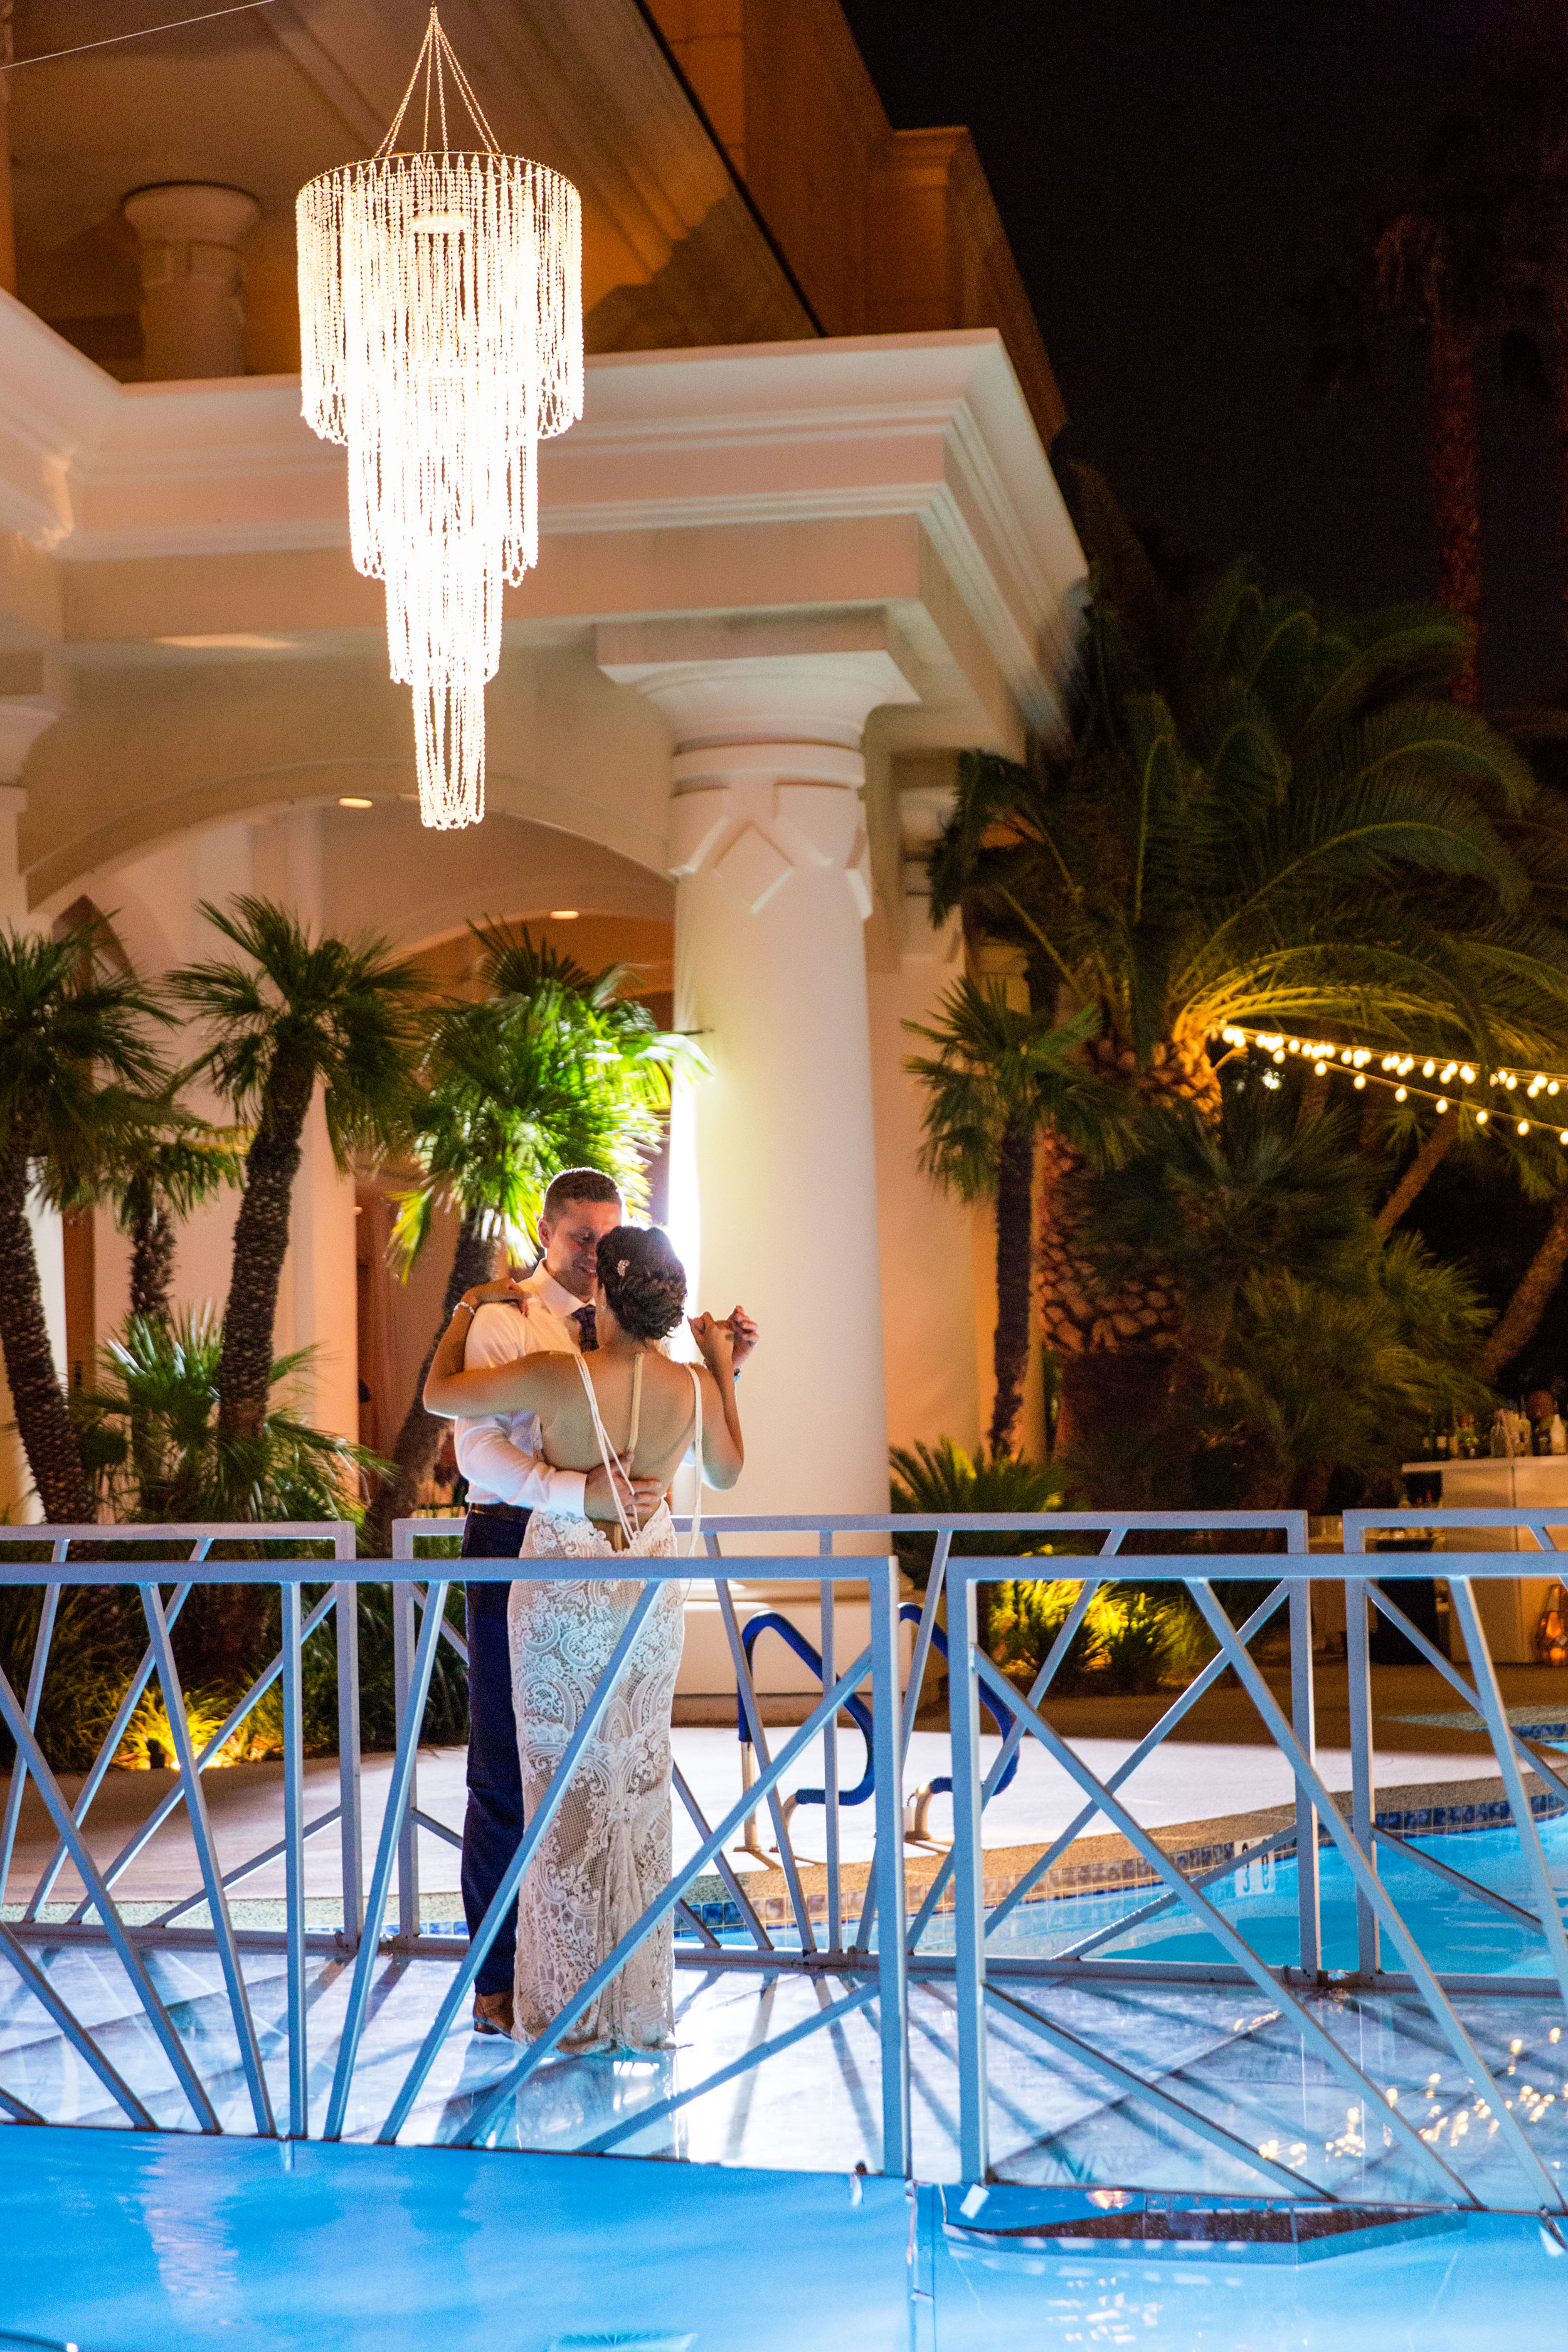 First dance on bridge over pool.Jewel toned wedding centerpieces with gold accents.Wedding Planning by  Andrea Eppolito Events  · Photography by  Shandro Photo   · Wedding Venue  Four Seasons Las Vegas  · Floral and Decor by  Destination by Design  · Cake by  Four Seasons Las Vegas  · Chandeliers and Lighting by  LED Unplugged  · Dress by  Berta  and Menu by Alligator Soup